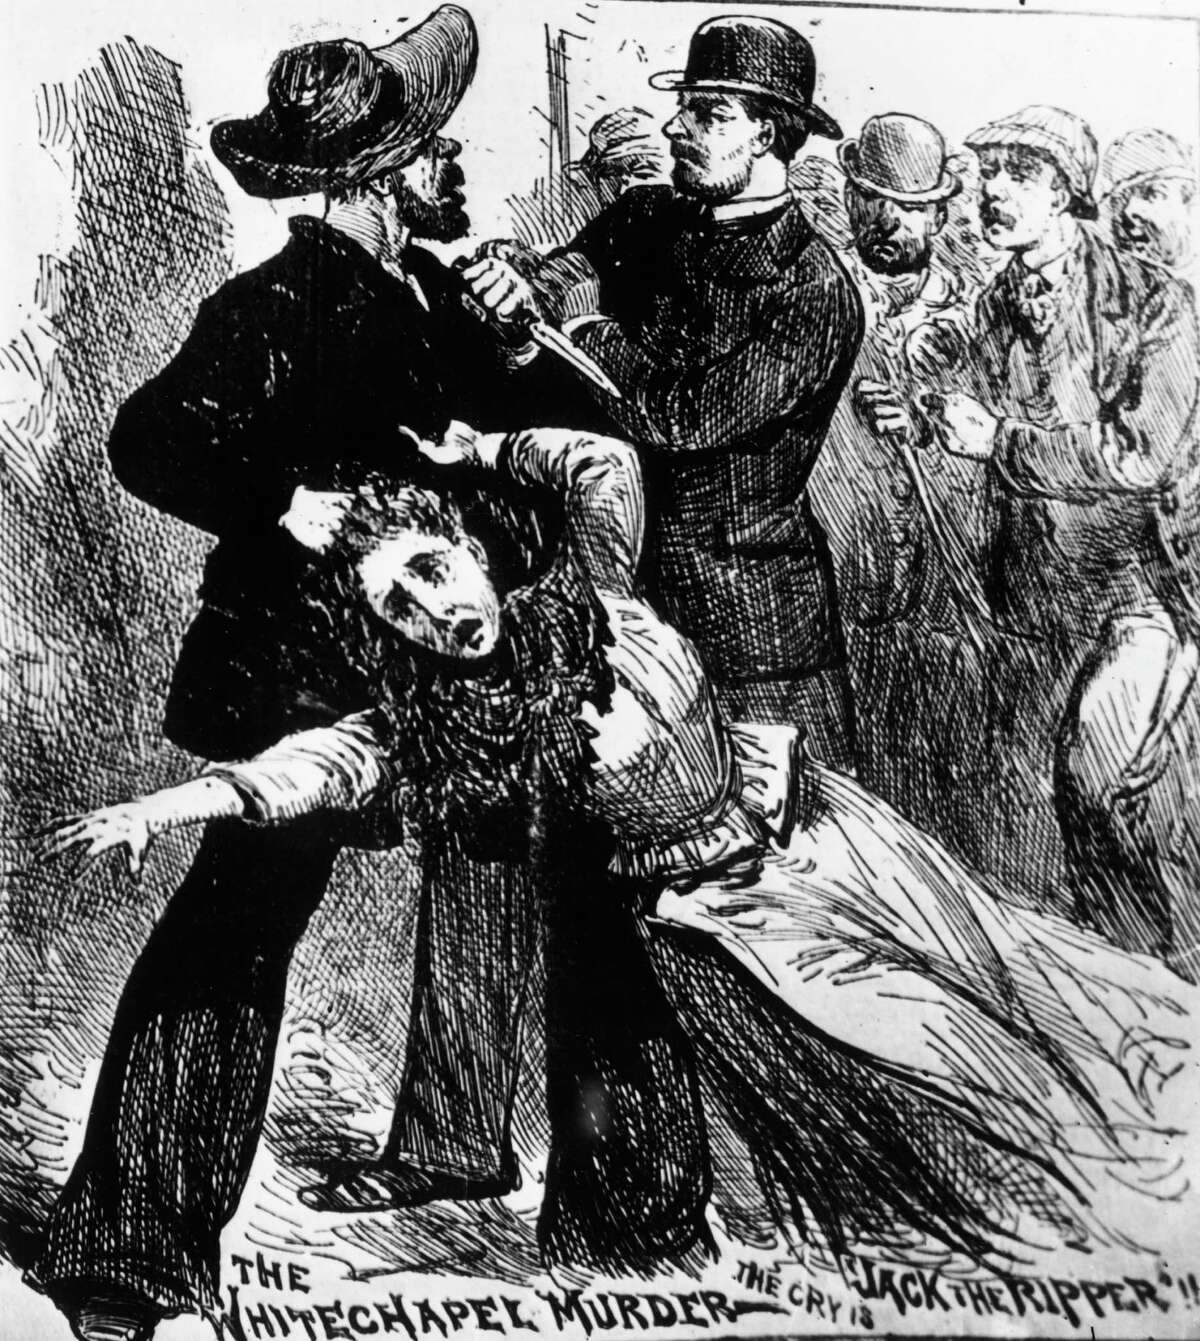 1889: A fanciful engraving showing 'Jack The Ripper', the east end Murderer of prostitutes in the nineteenth century, being caught red-handed, grasping one of his victims by the hair and holding a knife. The caption reads : 'The Whitechapel murder, The cry is Jack The Ripper !!'.